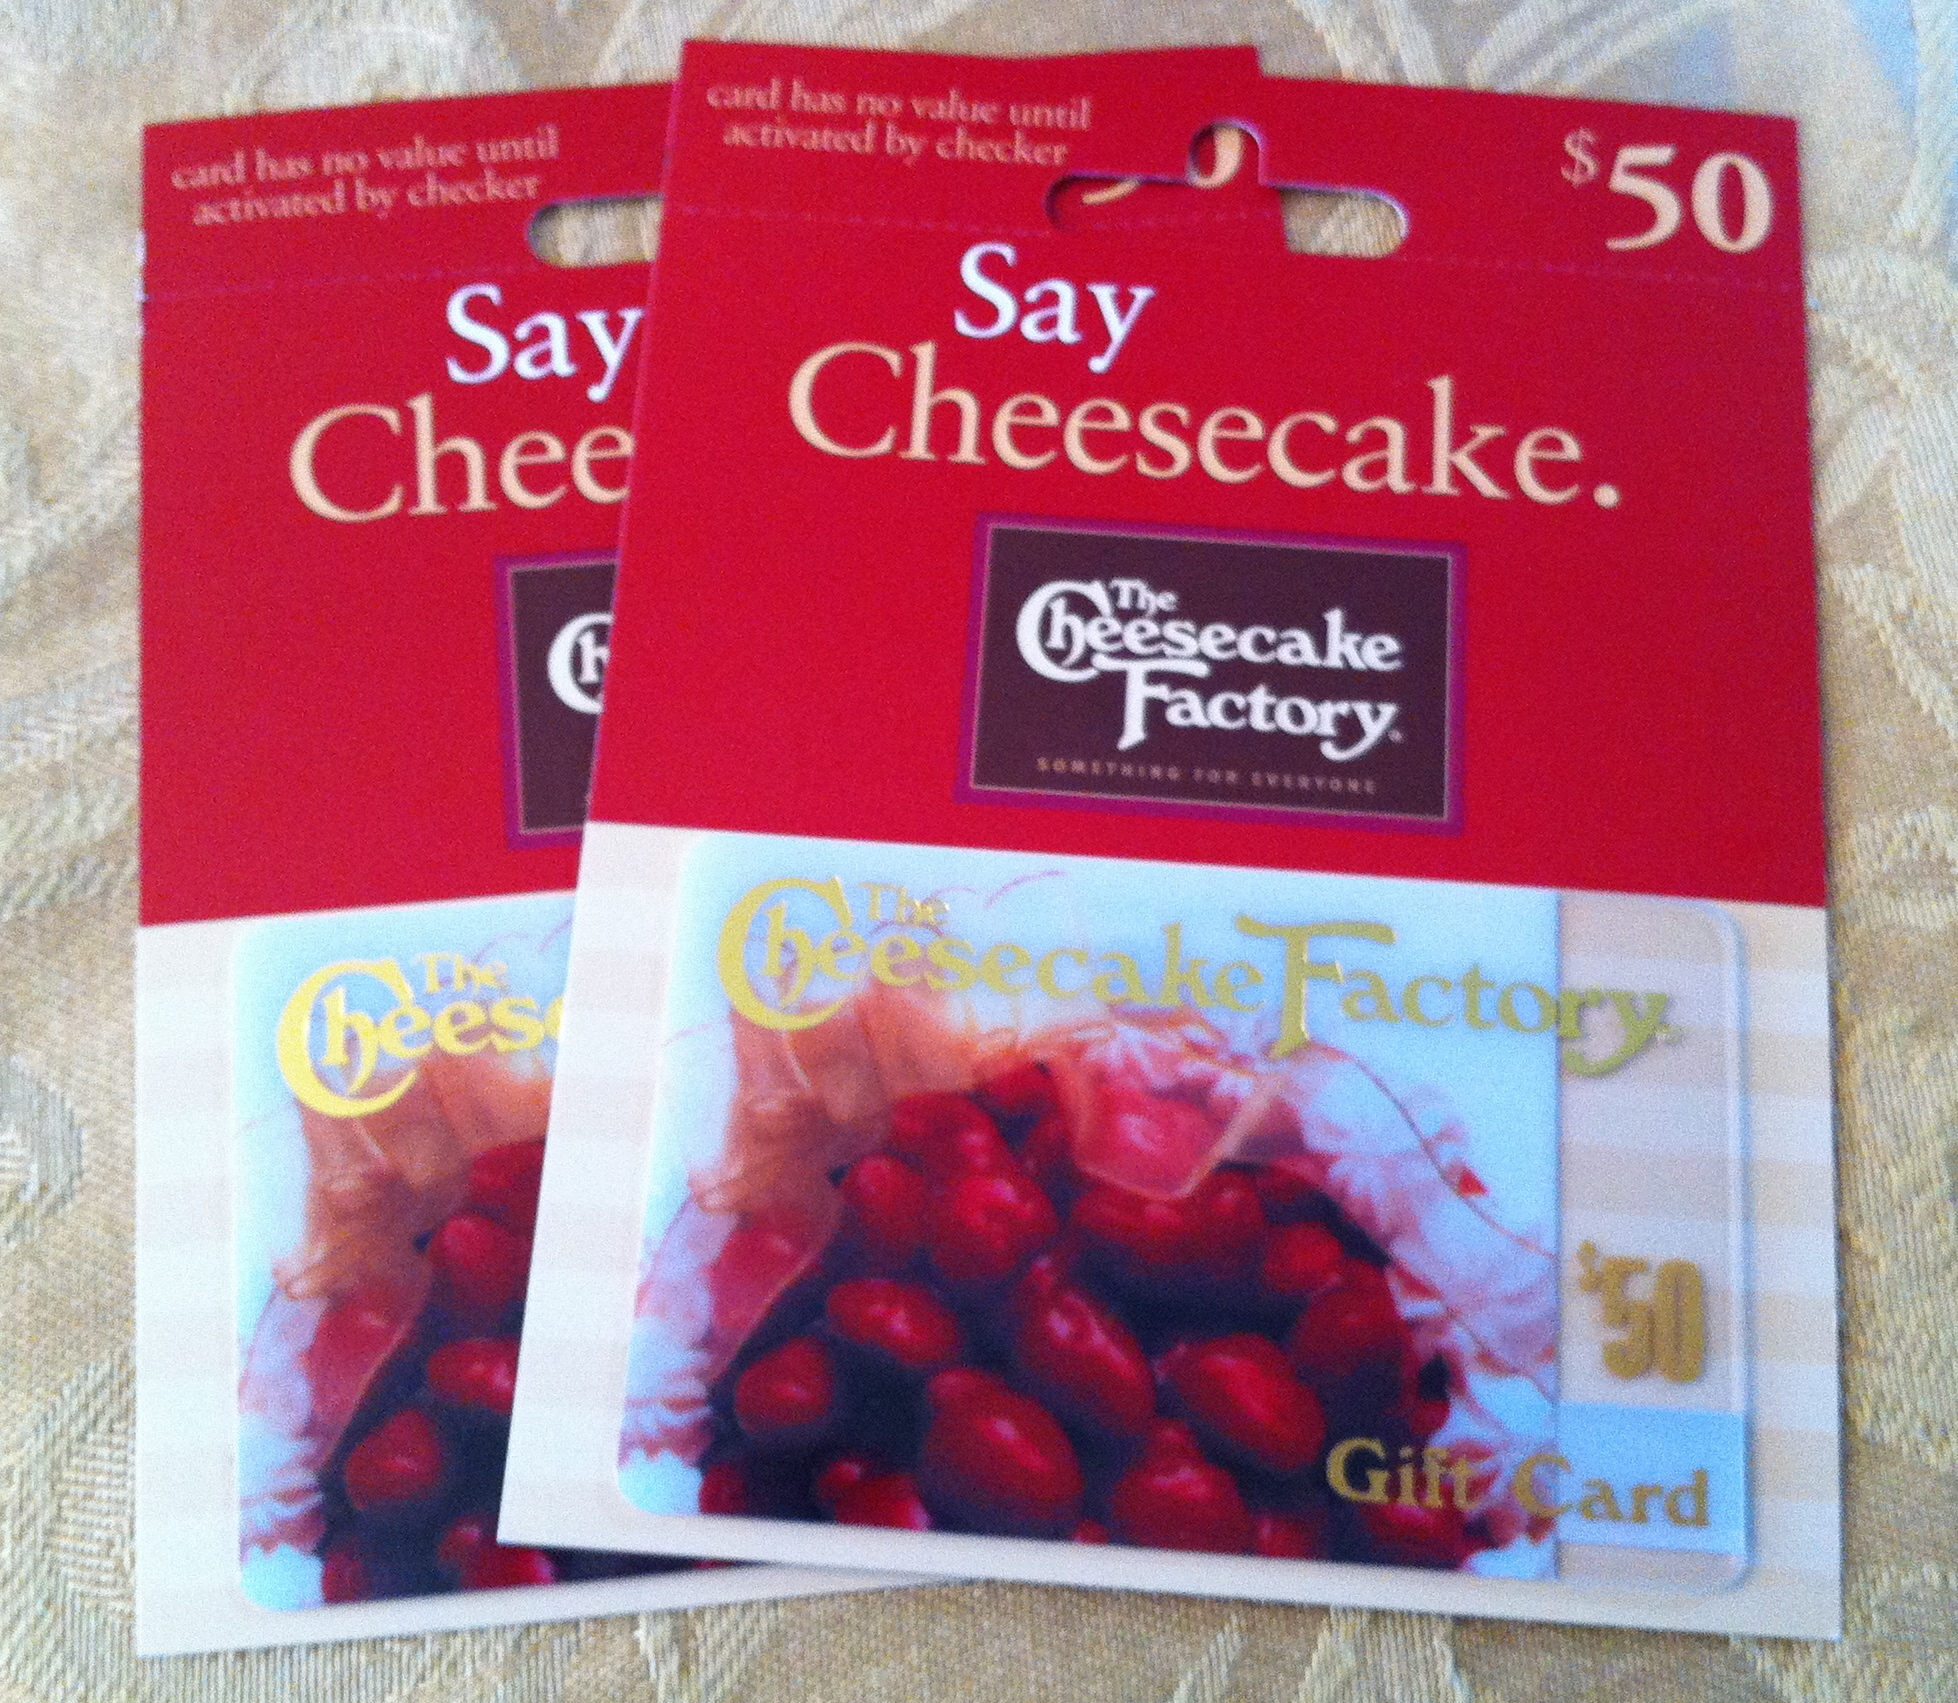 Think about any restaurants you may eat at while you are there. We always have a special dinner at the Cheesecake Factory, so I picked up $100 in gift cards ...